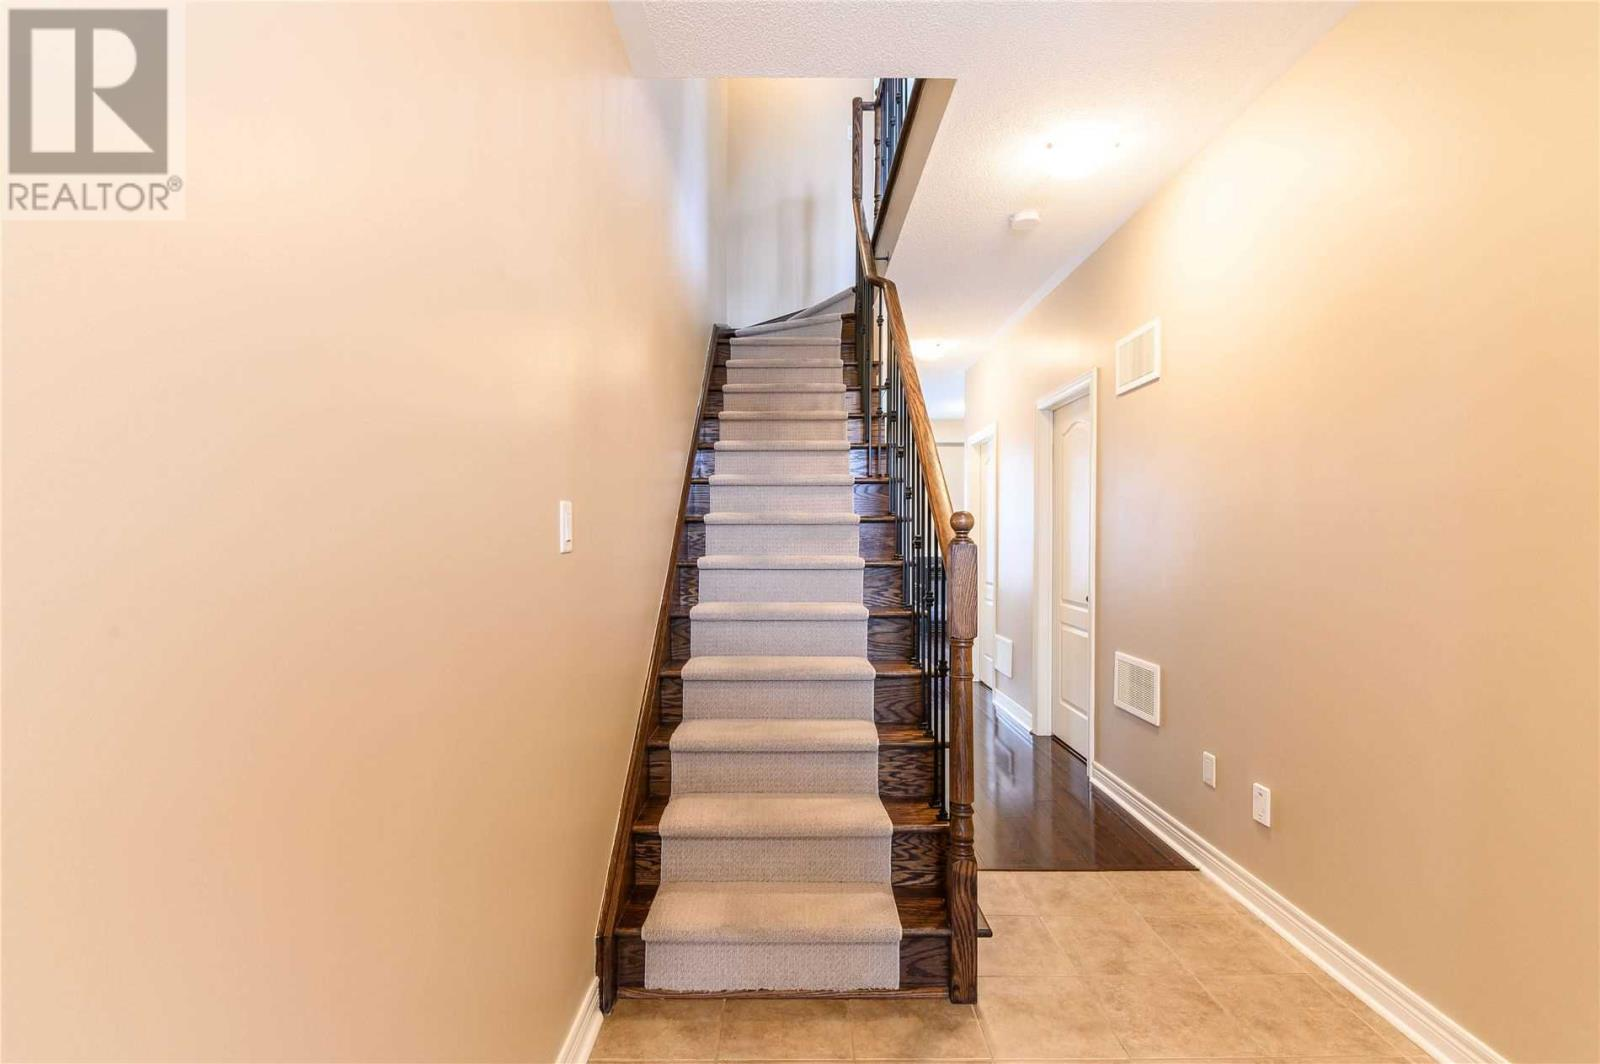 5710 Long Valley Rd, Mississauga, Ontario  L5M 0M1 - Photo 7 - W4674367